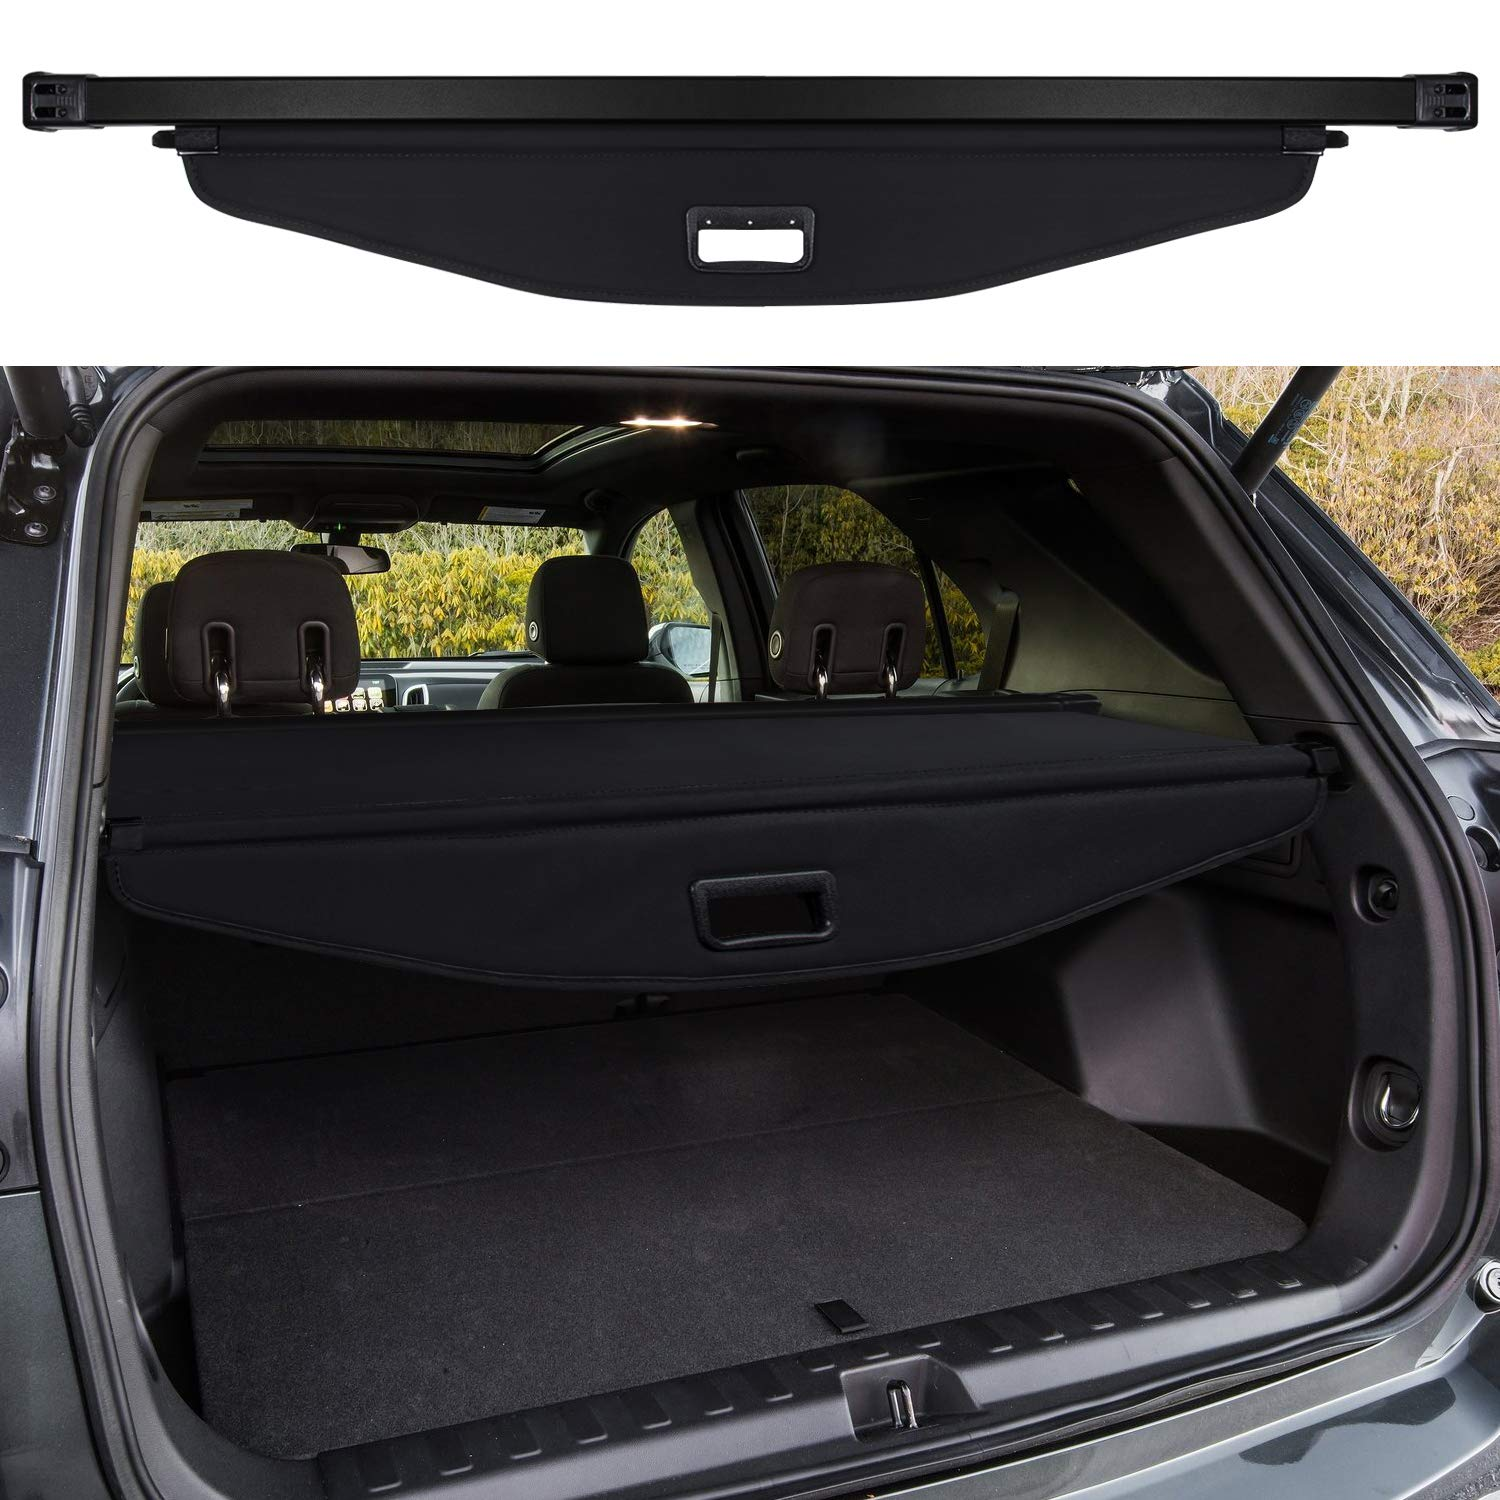 For Chevrolet Equinox Rear Trunk Security Shield Cargo